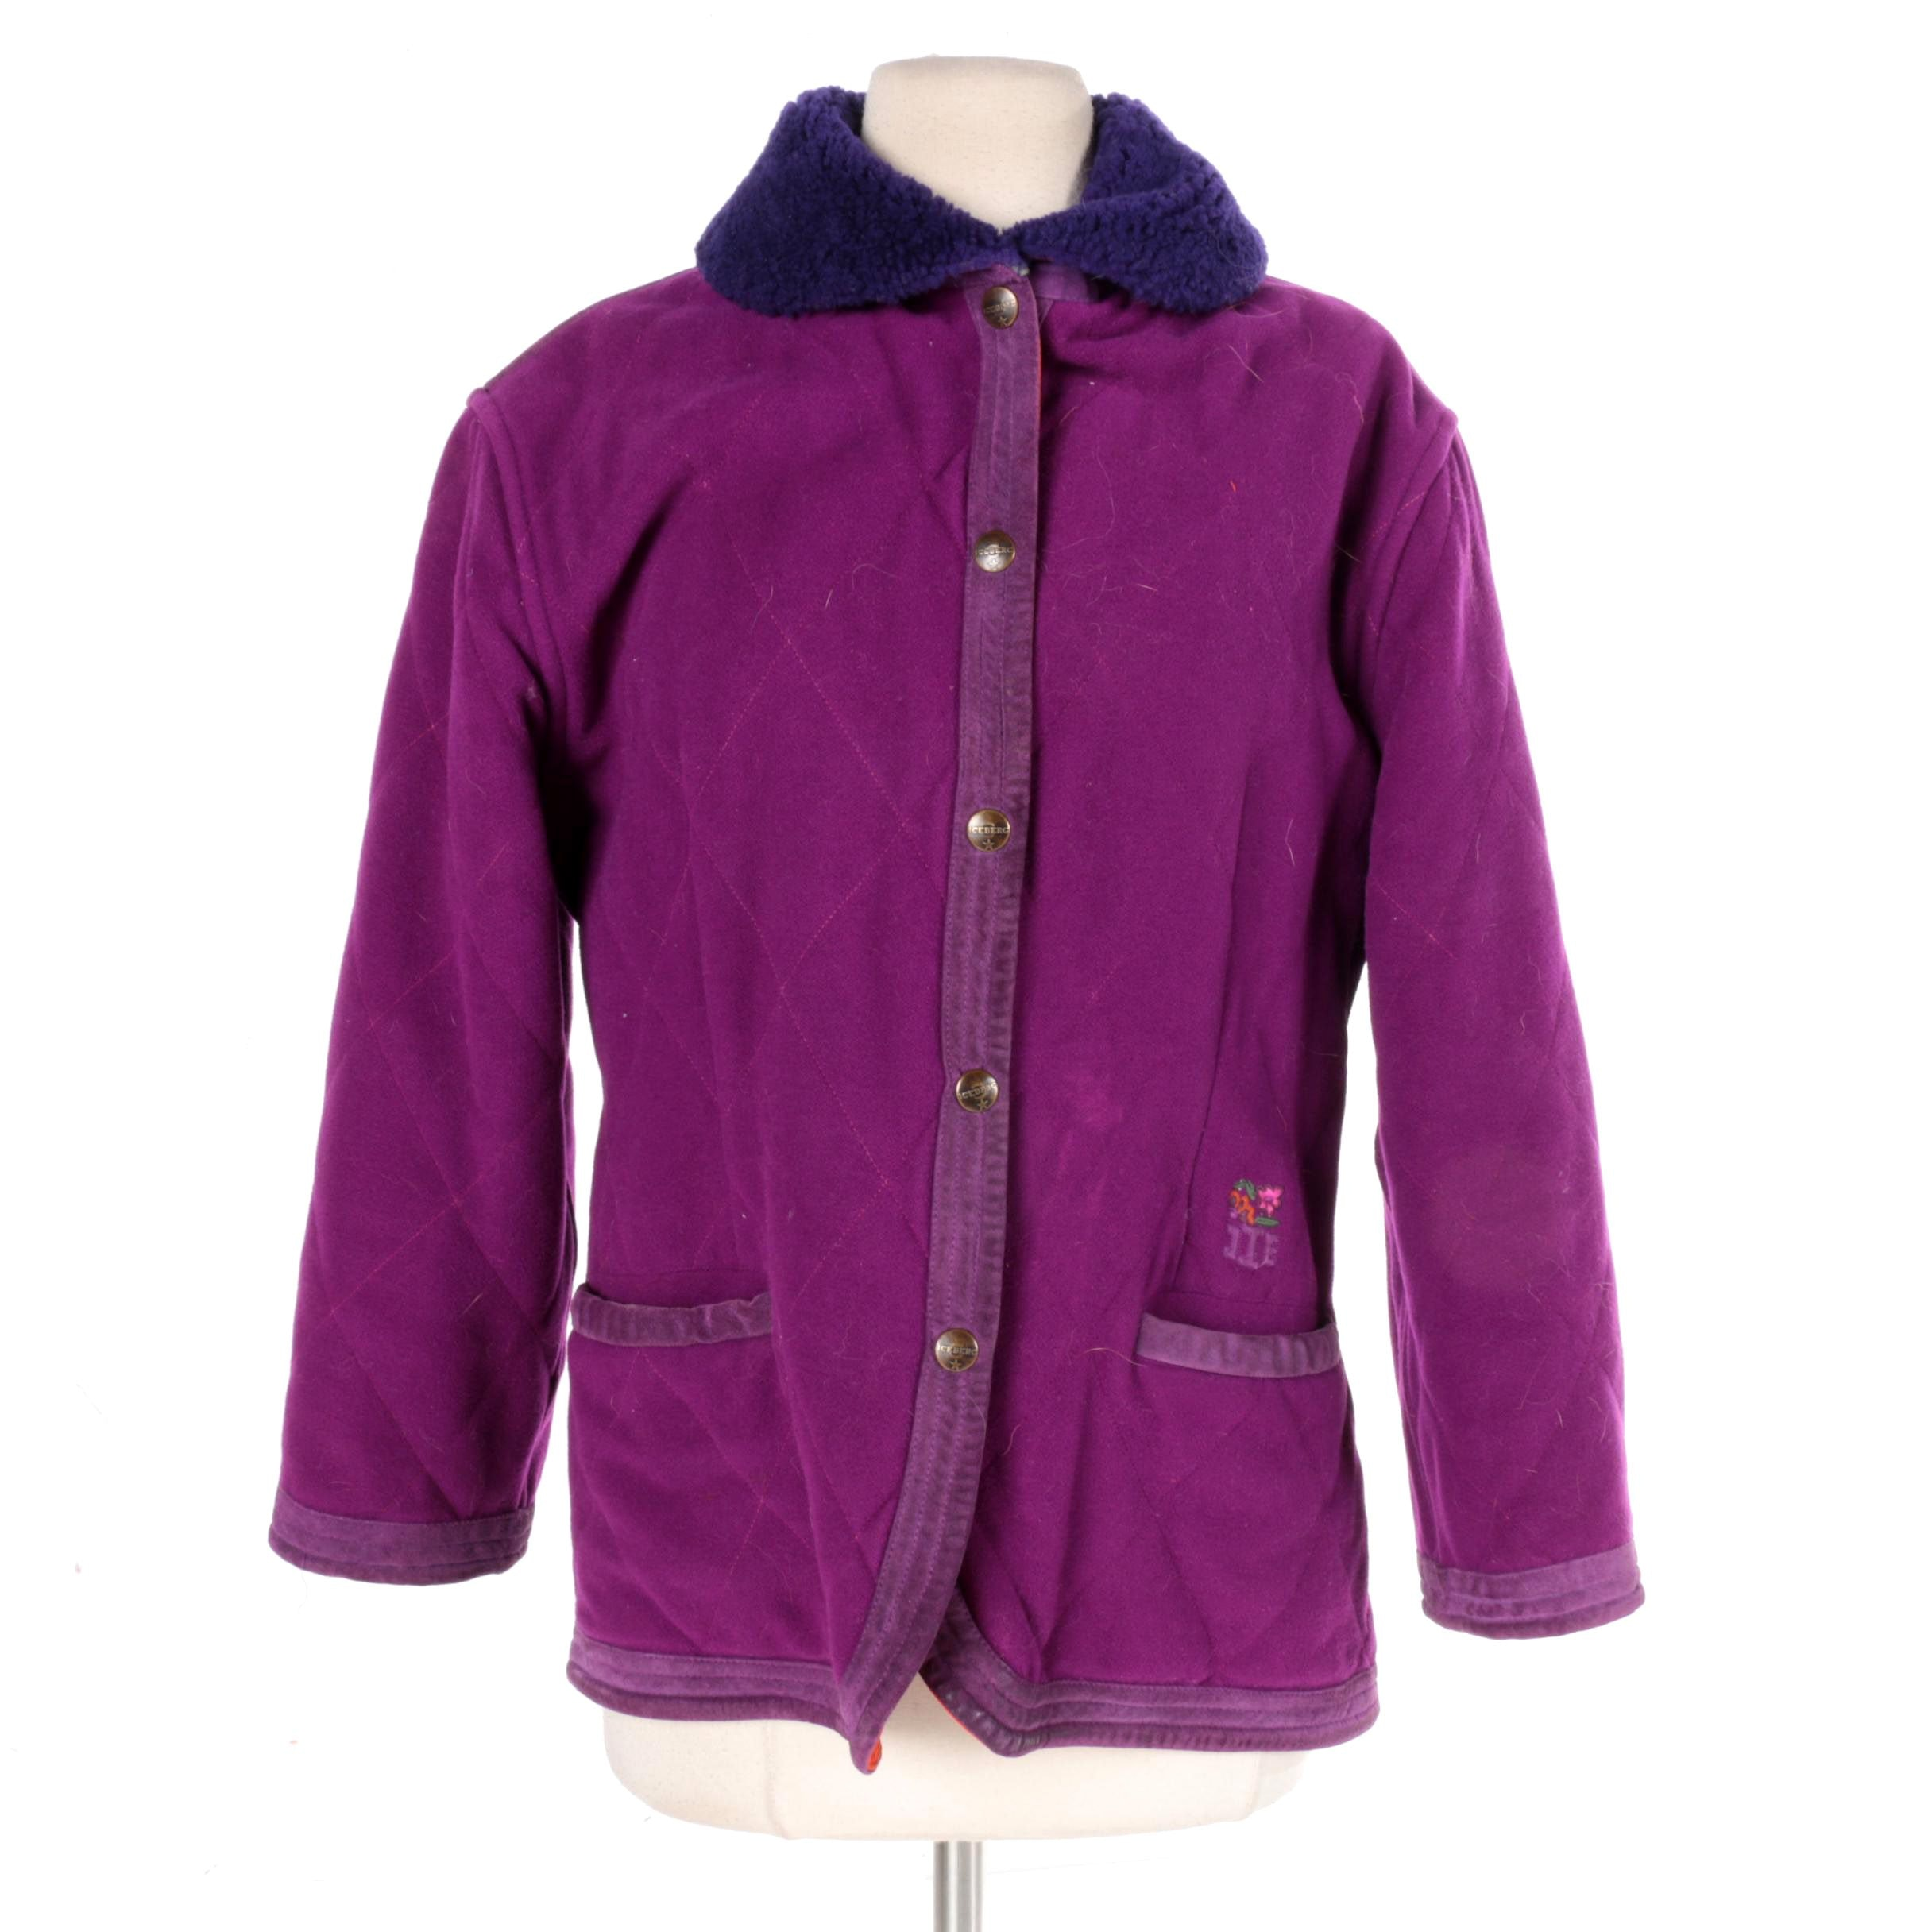 Women's Iceberg Purple Wool and Leather Jacket